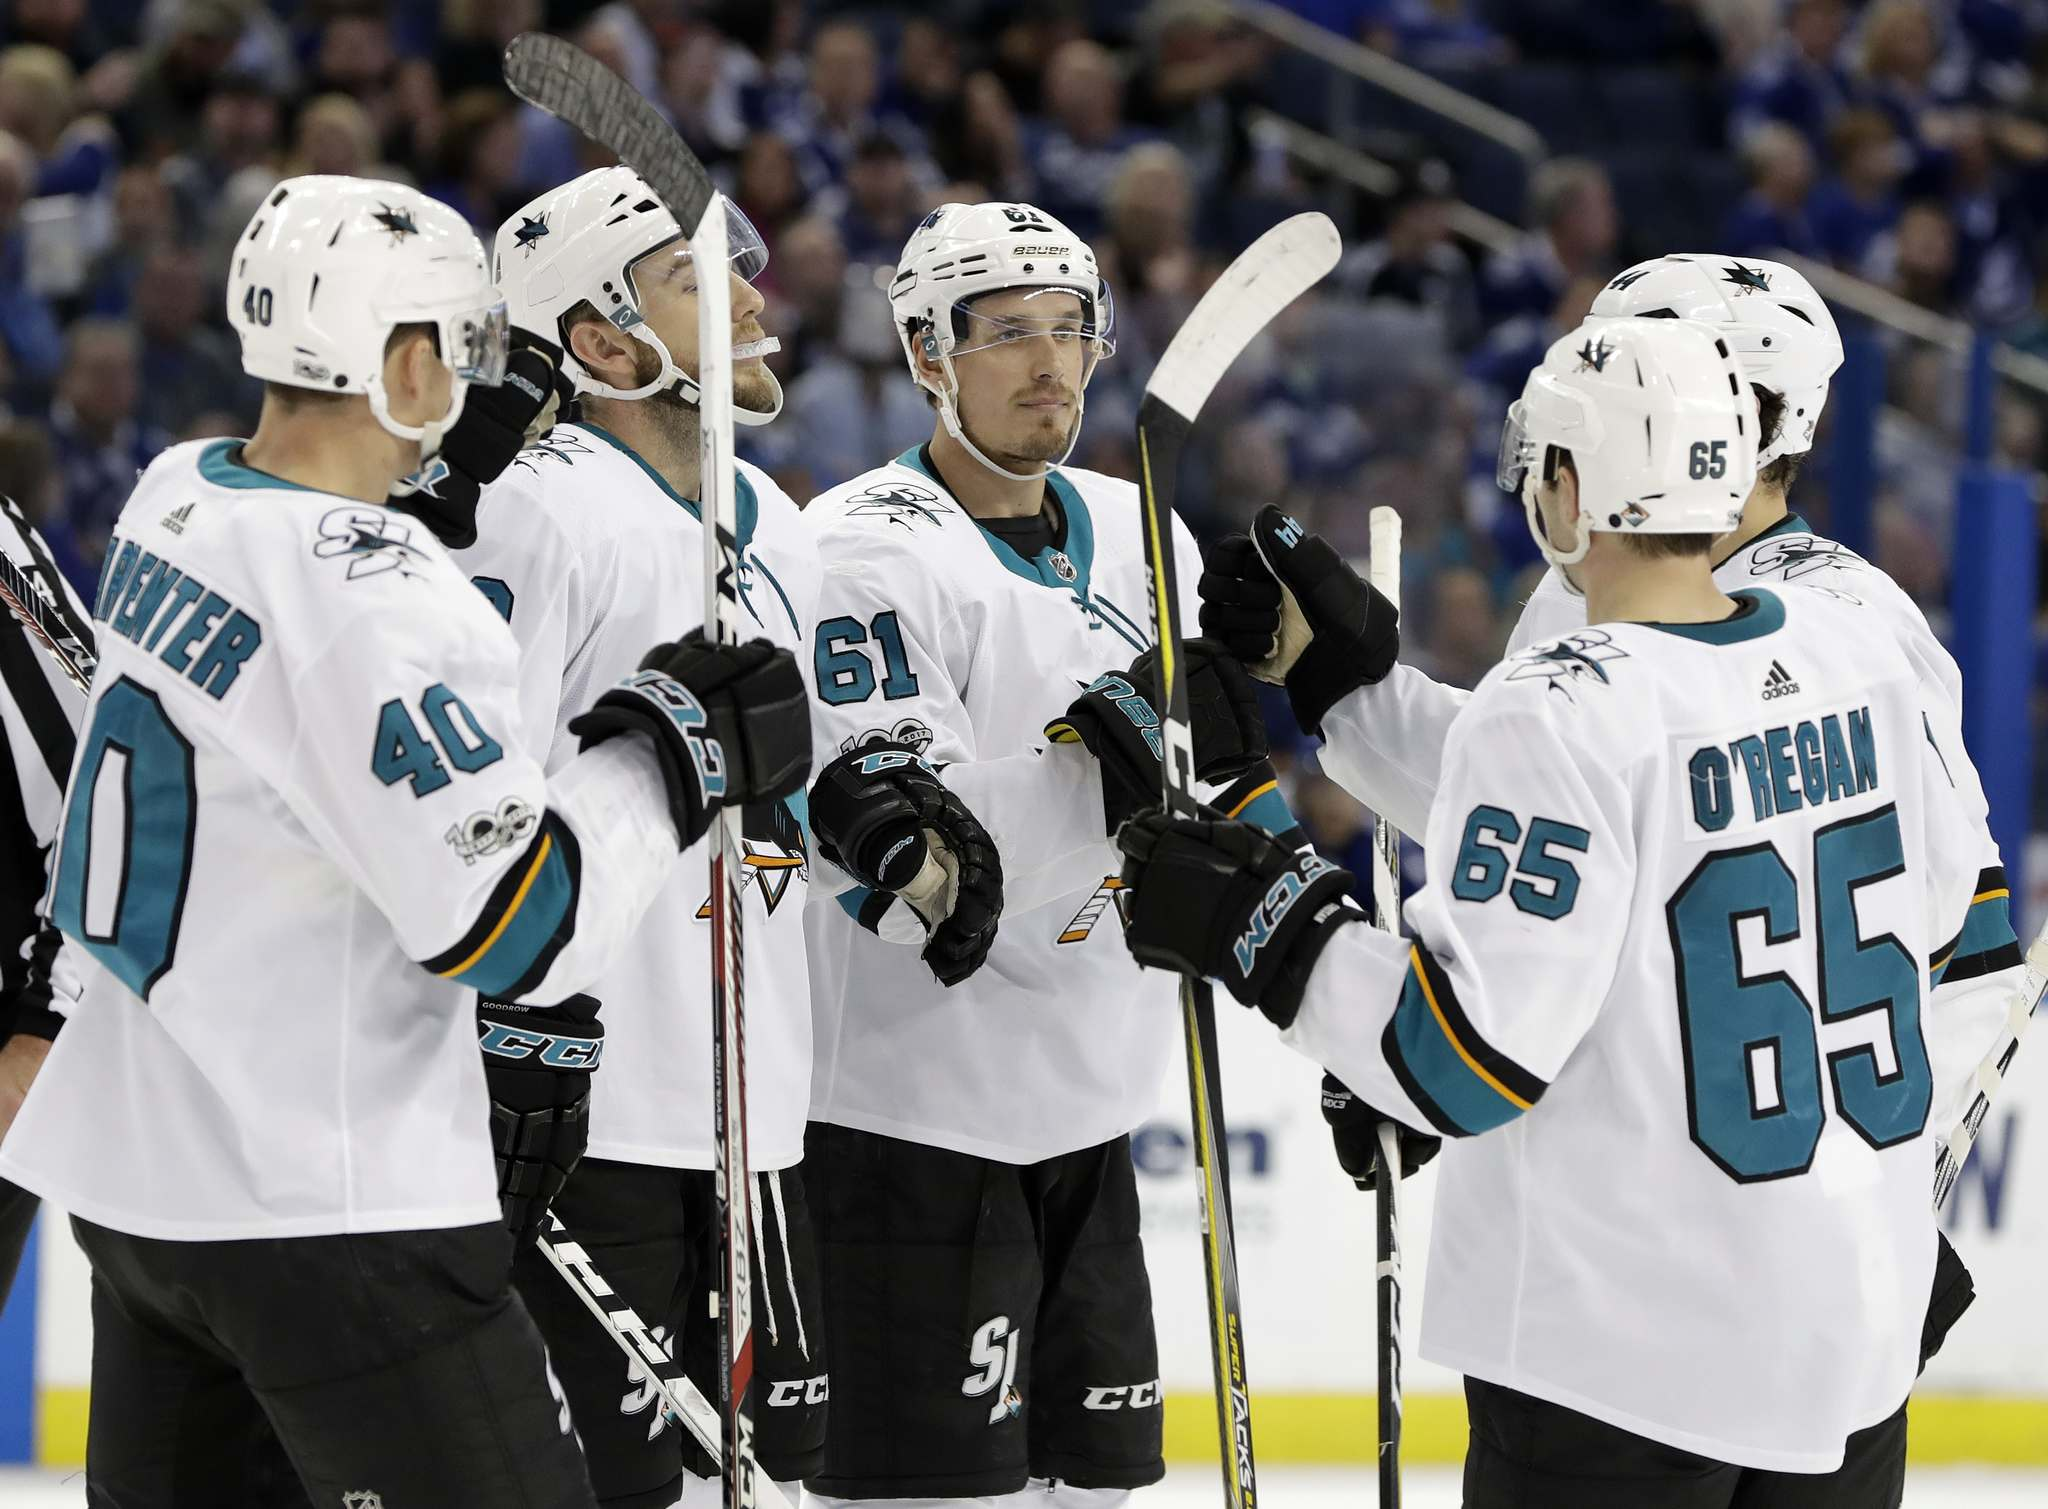 Chris O'Meara / The Associated Press files</p><p>San Jose Sharks defenceman Justin Braun (centre) celebrates with teammates during the third period of a game on Dec. 2, 2017, in Tampa, Fla.</p>